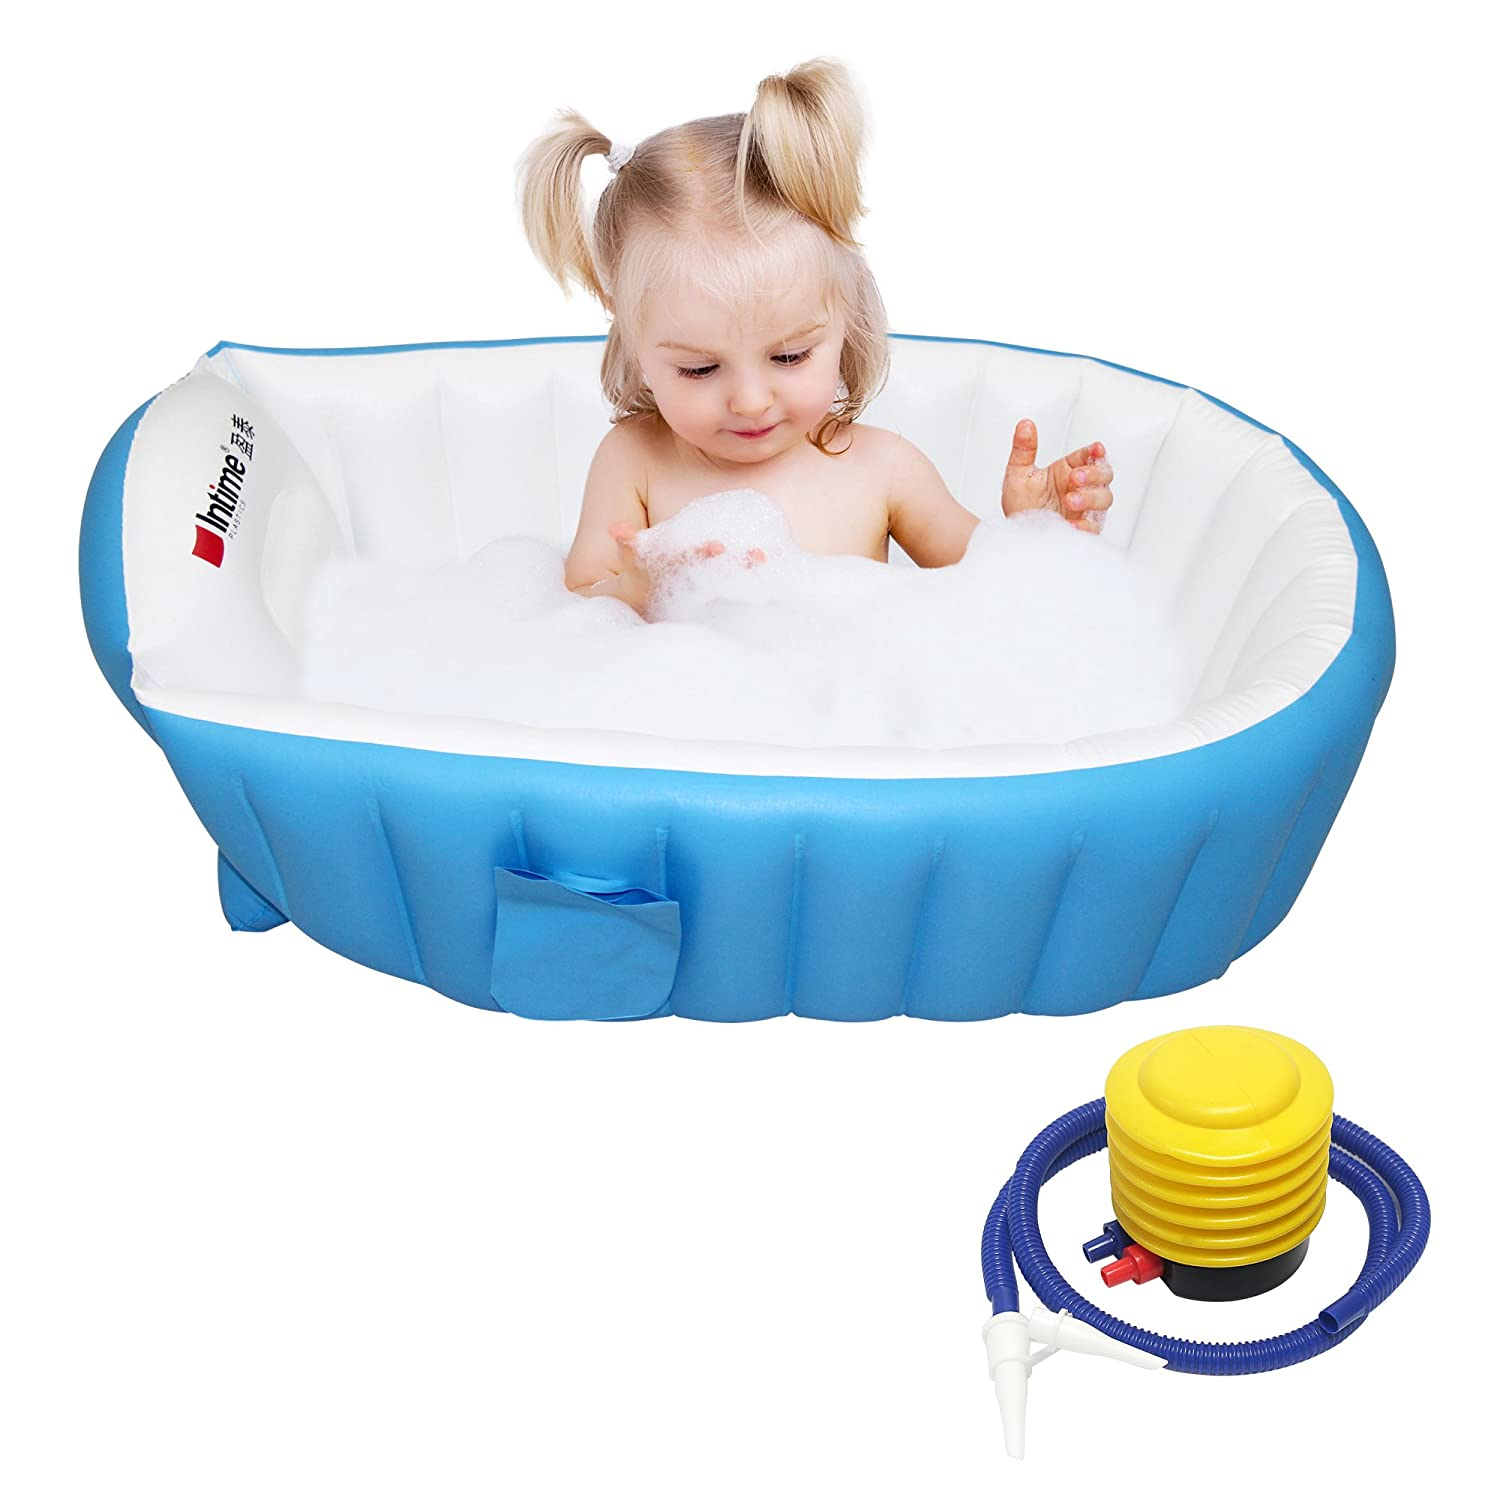 Signstek Baby Infant Travel Inflatable Non Slip Bathing Tub Bathtub ...